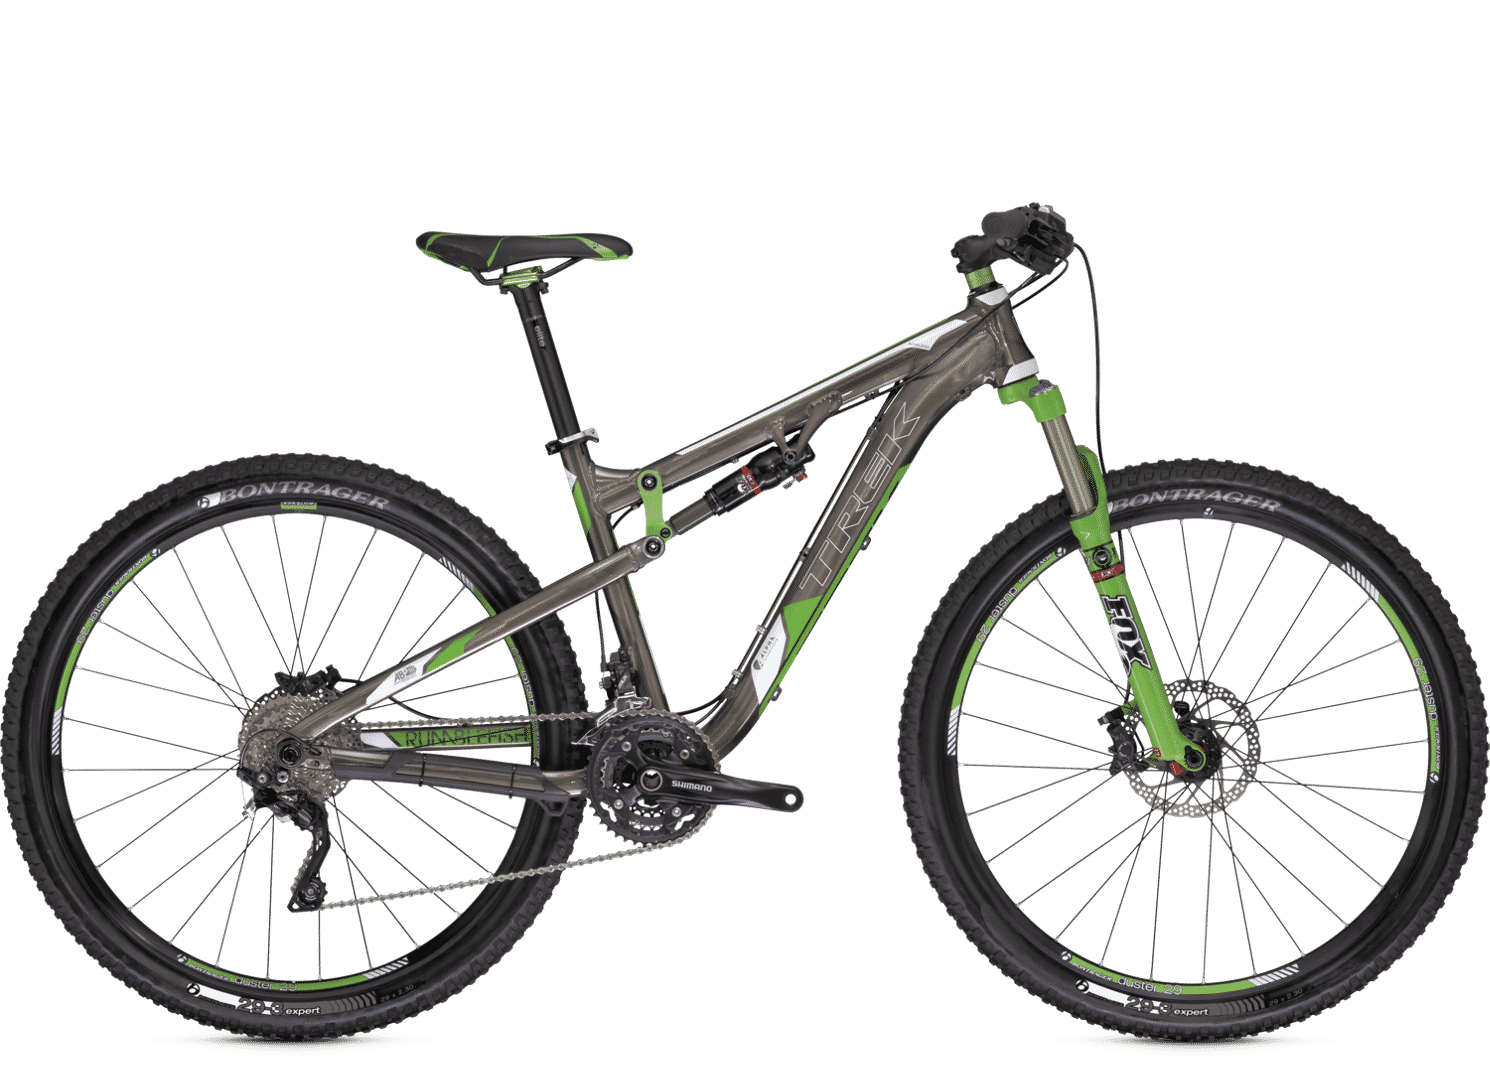 Trek Rumblefish Elite Specifications